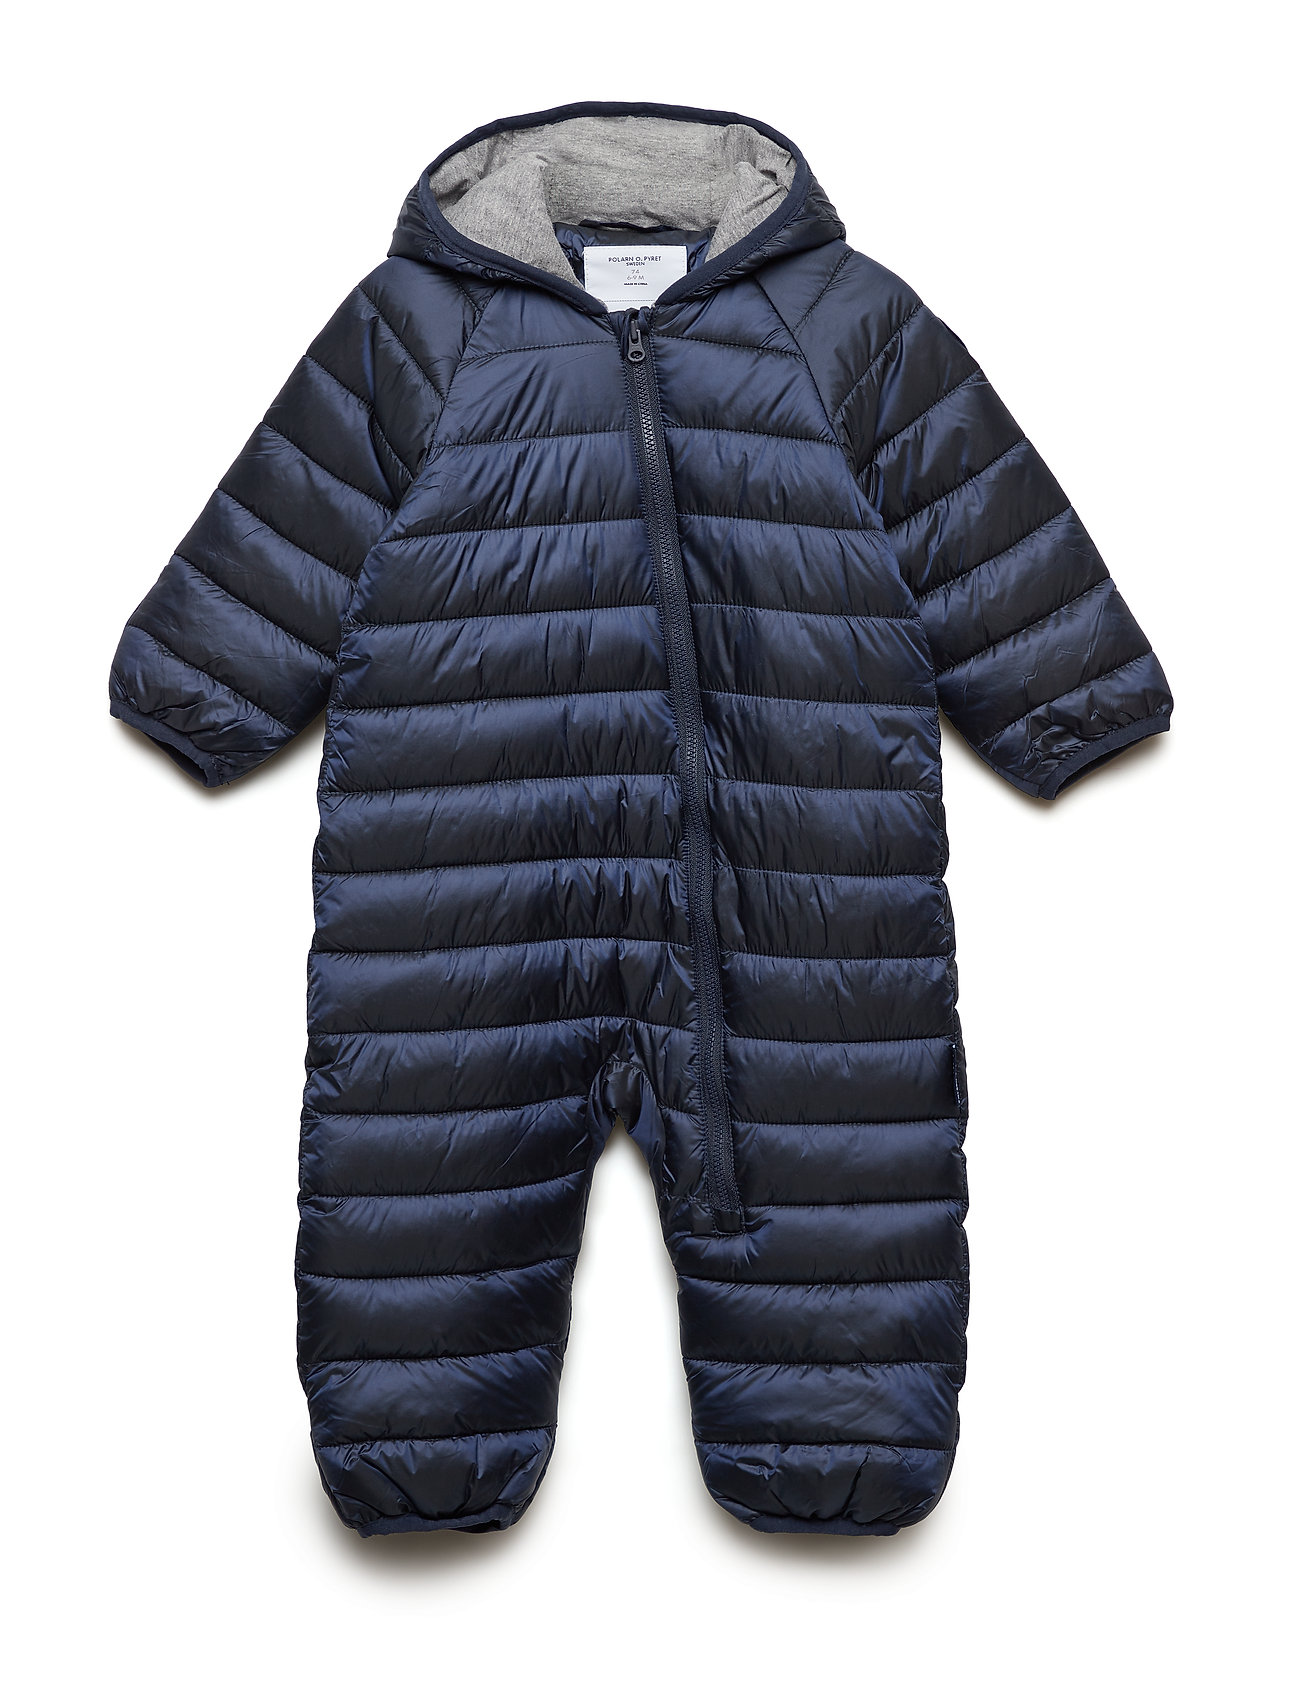 Polarn O. Pyret Baby Puffer Overall